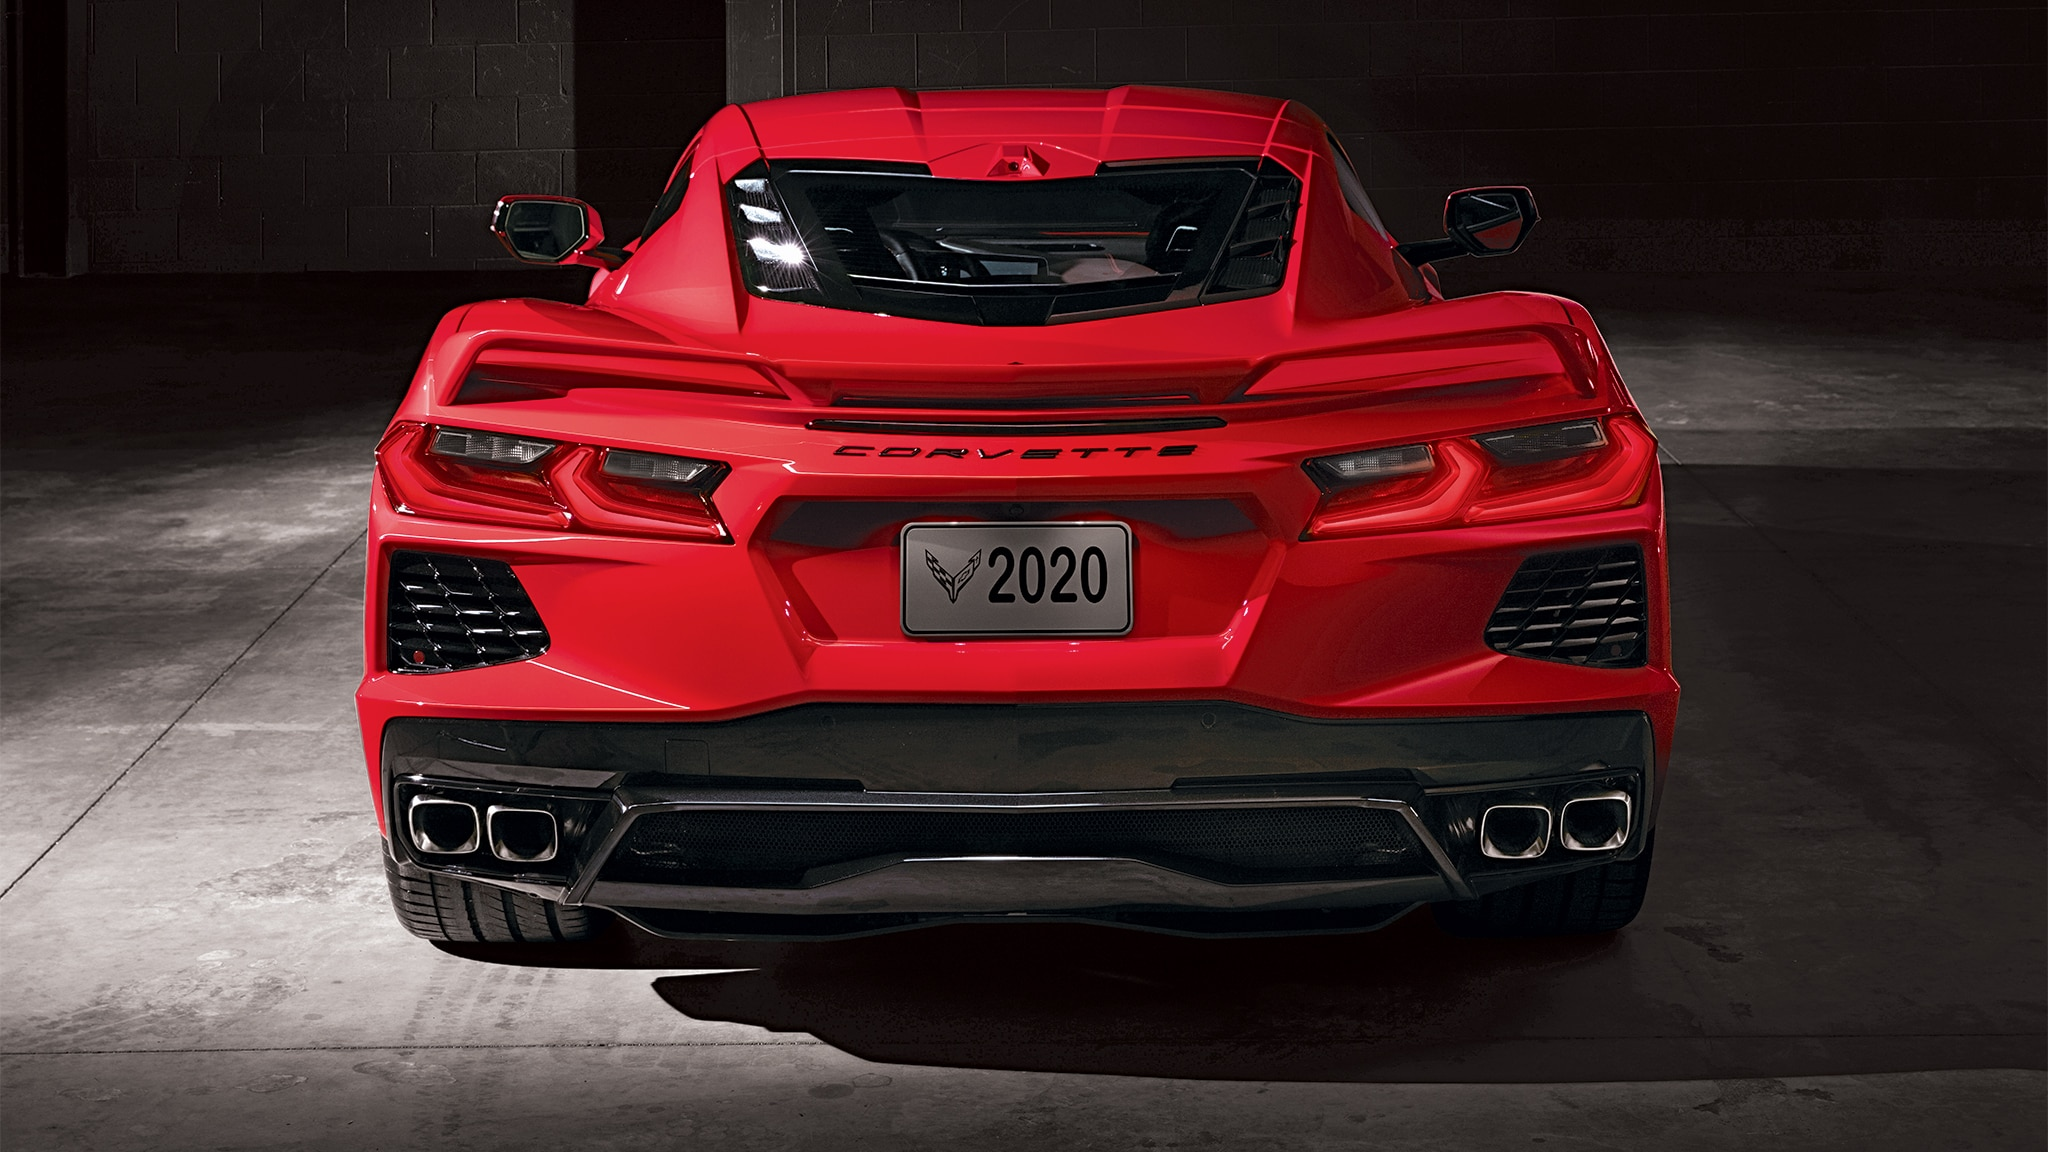 2020 Corvette Stingray Colors And Options Automobile Magazine